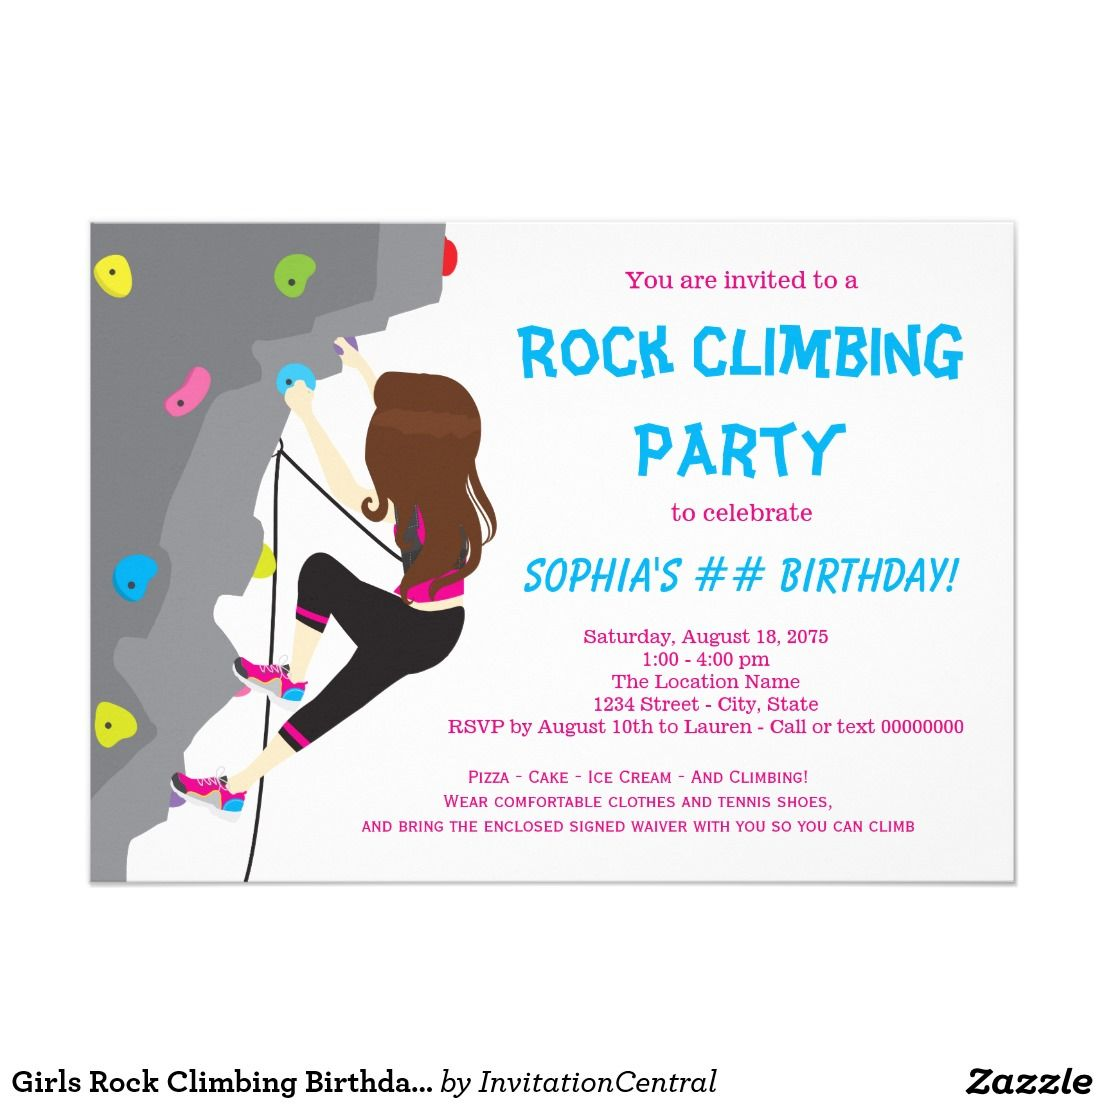 Girls Rock Climbing Birthday Party Invitations | Rock climbing ...